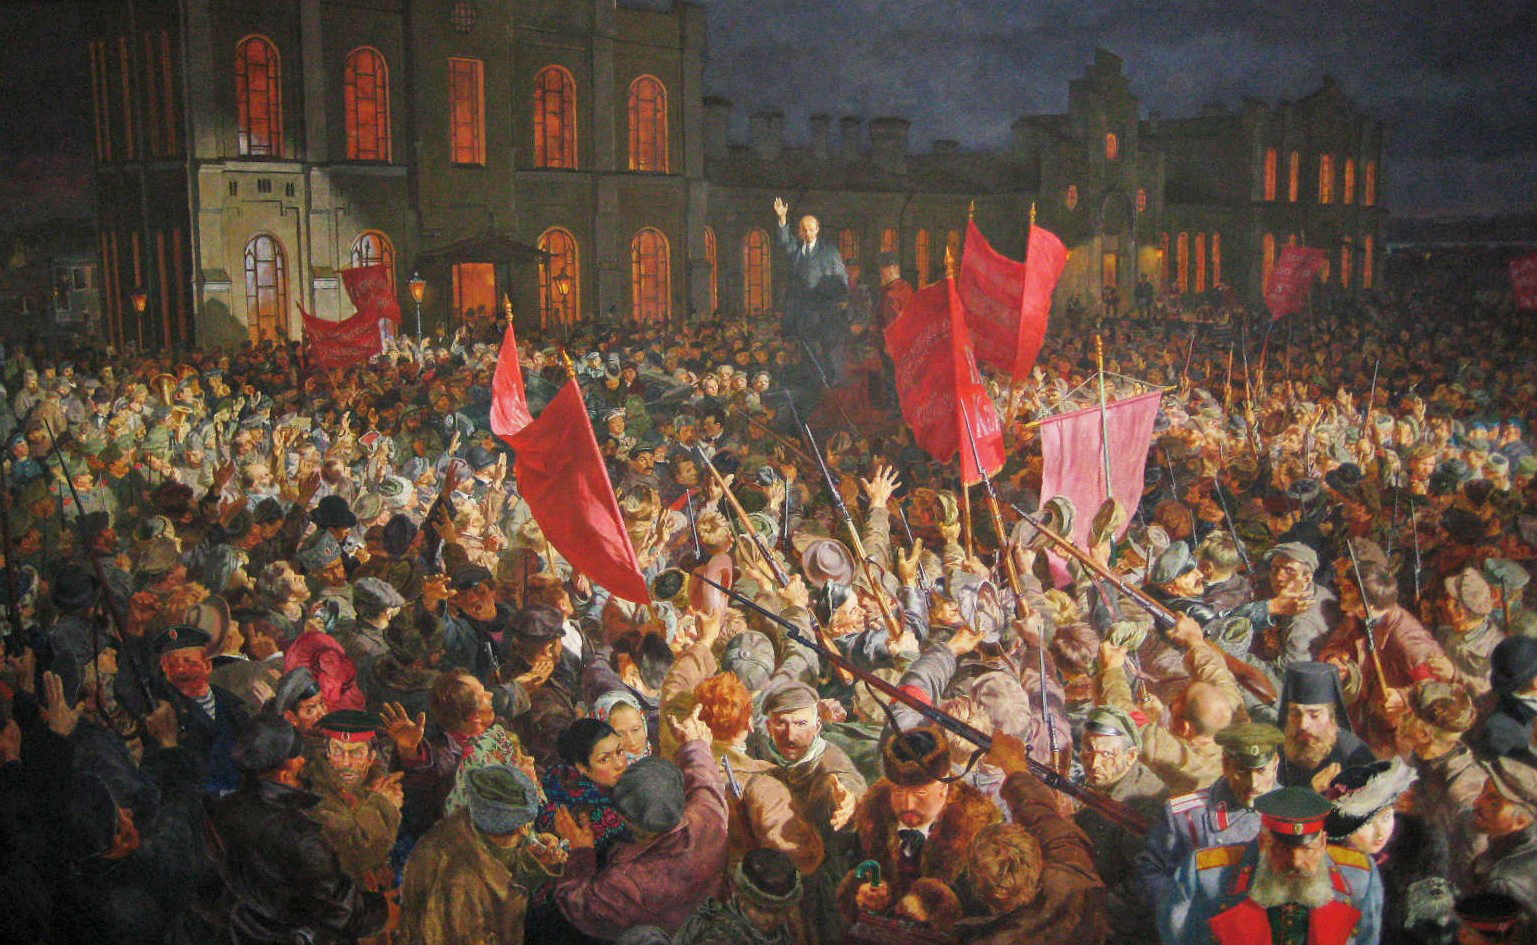 A gigantic painting of Lenin addressing the crowd upon his return to Russia during the Russian Revolution. Note the disaffected bourgeoisie, military officers, and priests in the lower right. The painting hangs in the Museum of Political History.